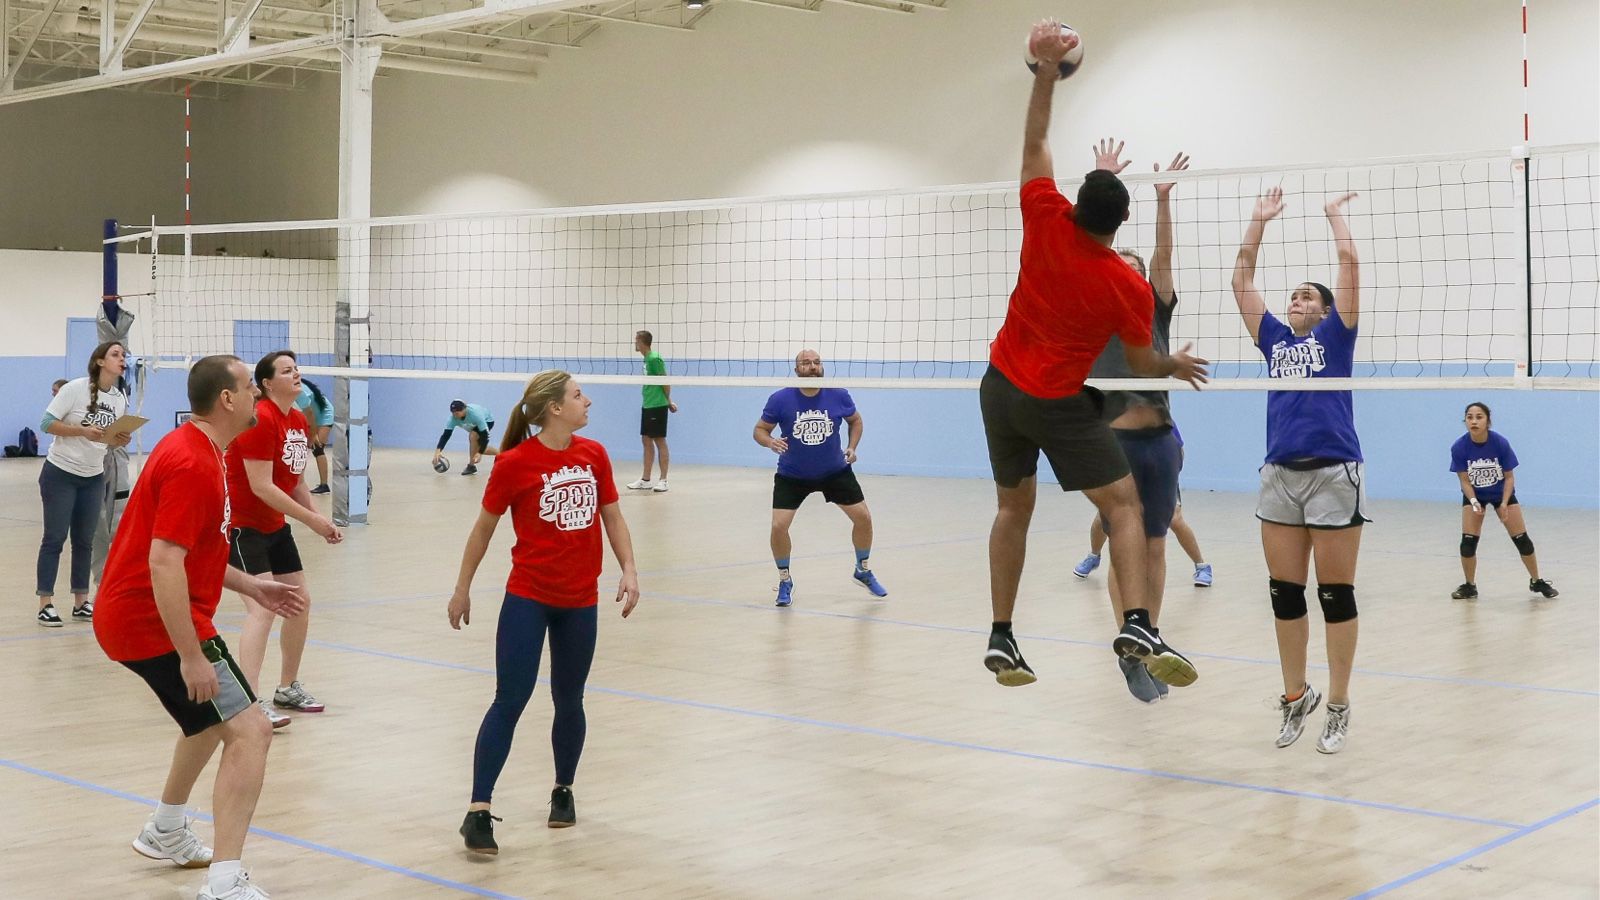 A group of men and women play indoor volleyball